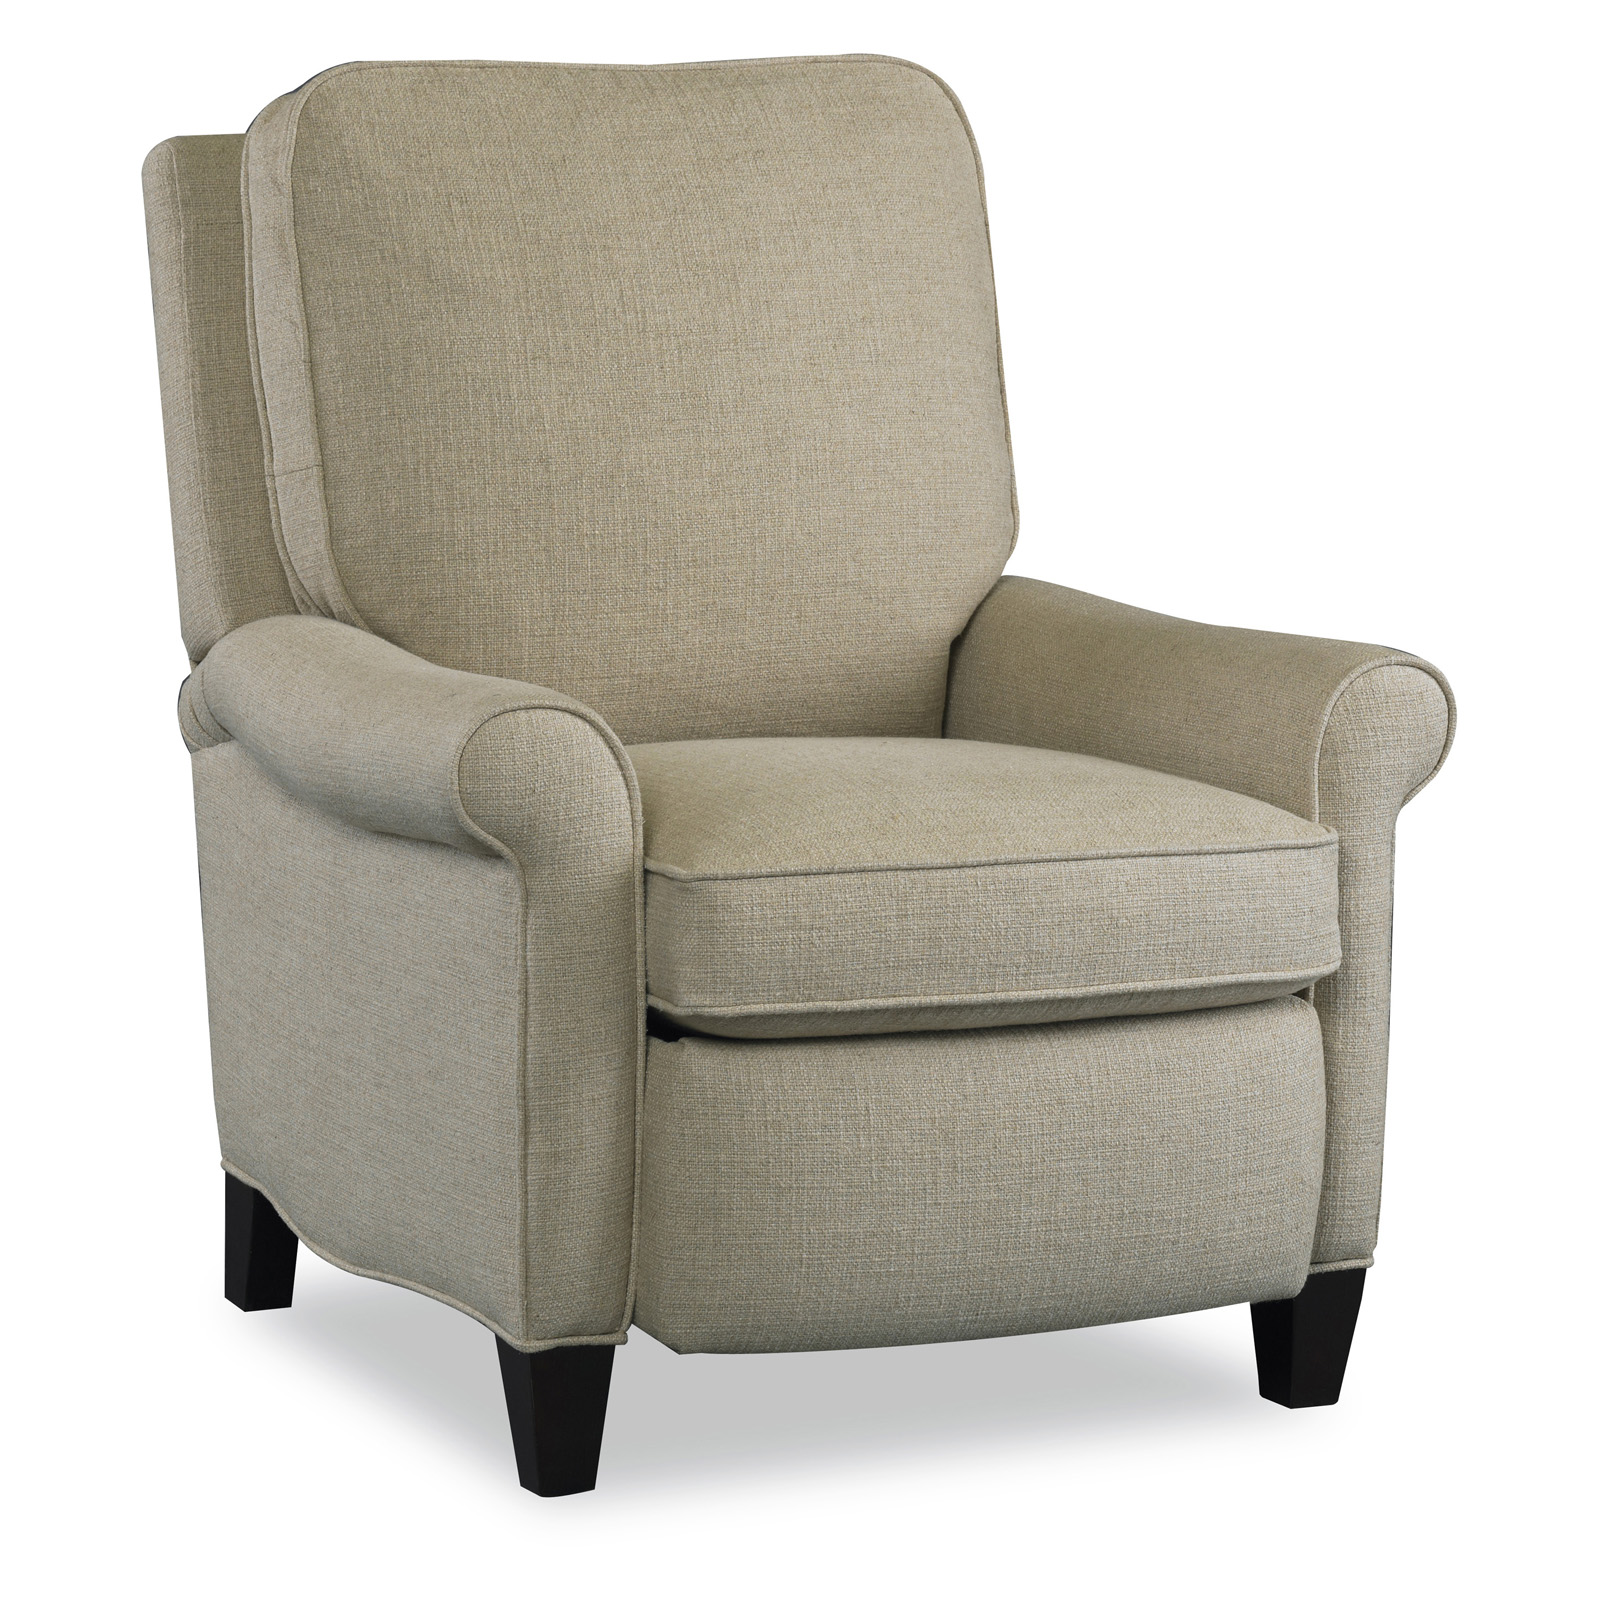 Push Back Chair Sam Moore Eleni Push Back Recliner Recliners At Hayneedle